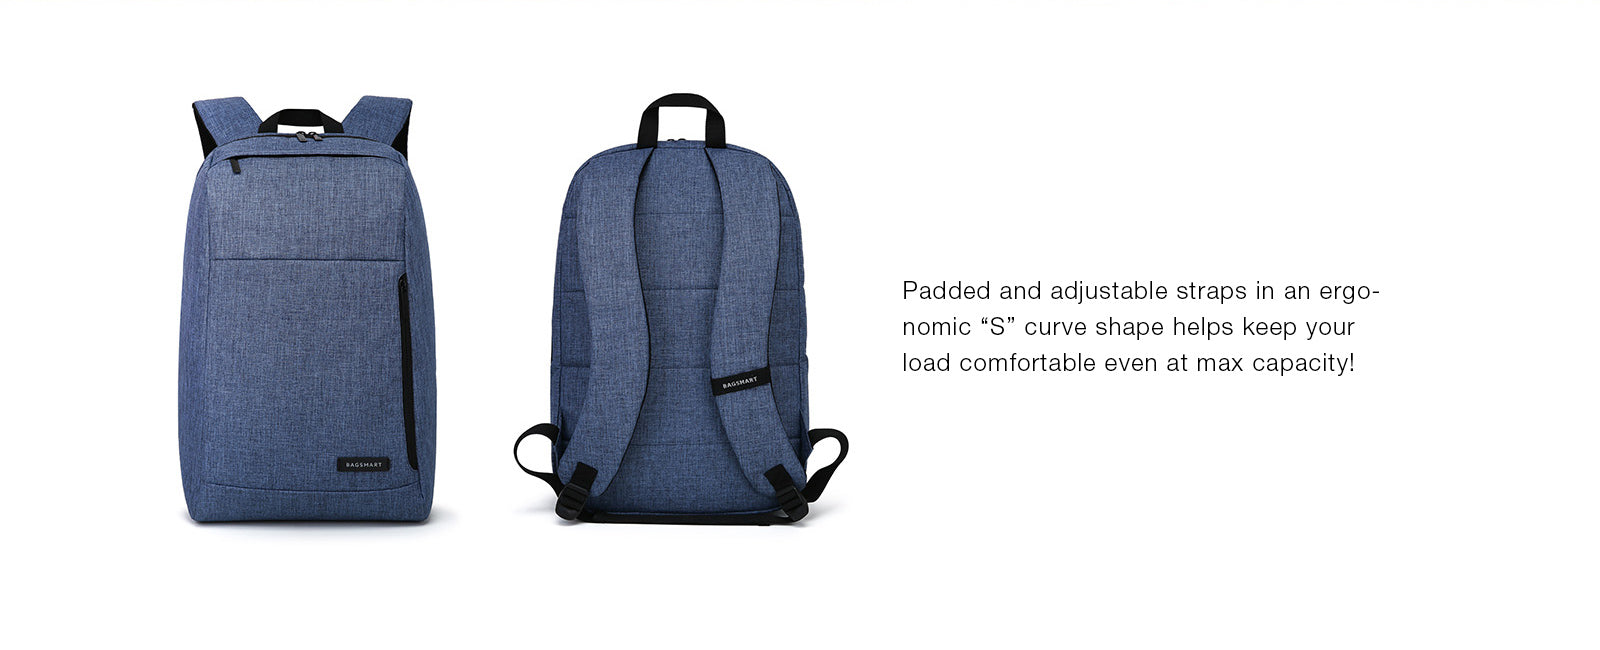 BAGSMART Business Laptop Backpack Water Resistant Slim School Backpack Fits Up To15.6 Inch Laptops Notebook Tablets